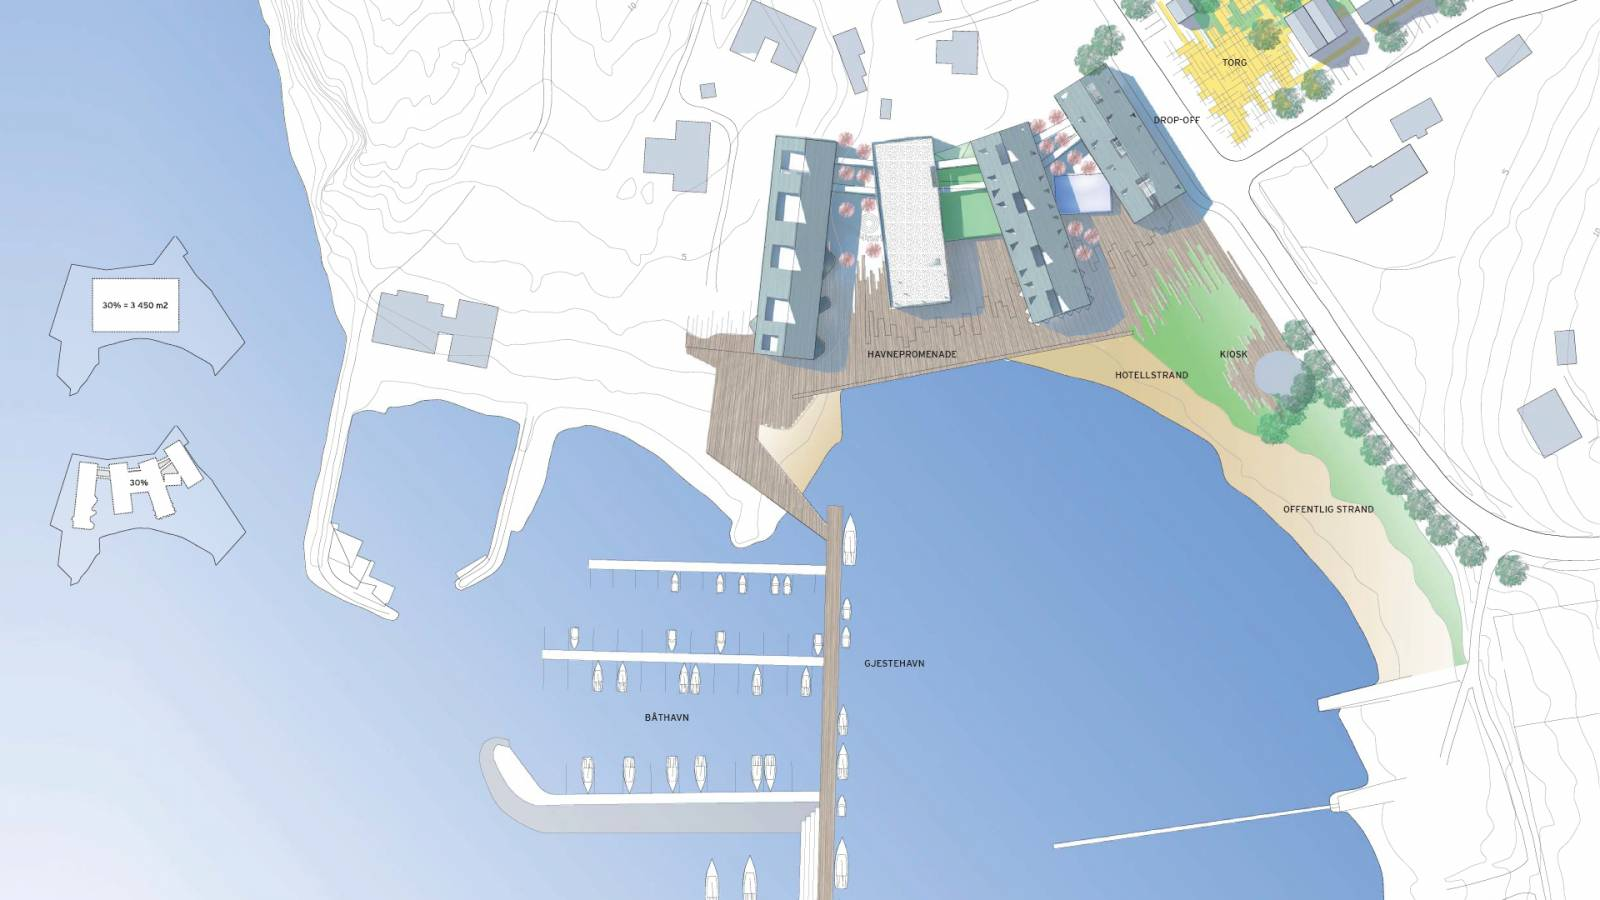 SITE PLAN HOTEL - Støtvig Hotel & Resort - SPOL Architects